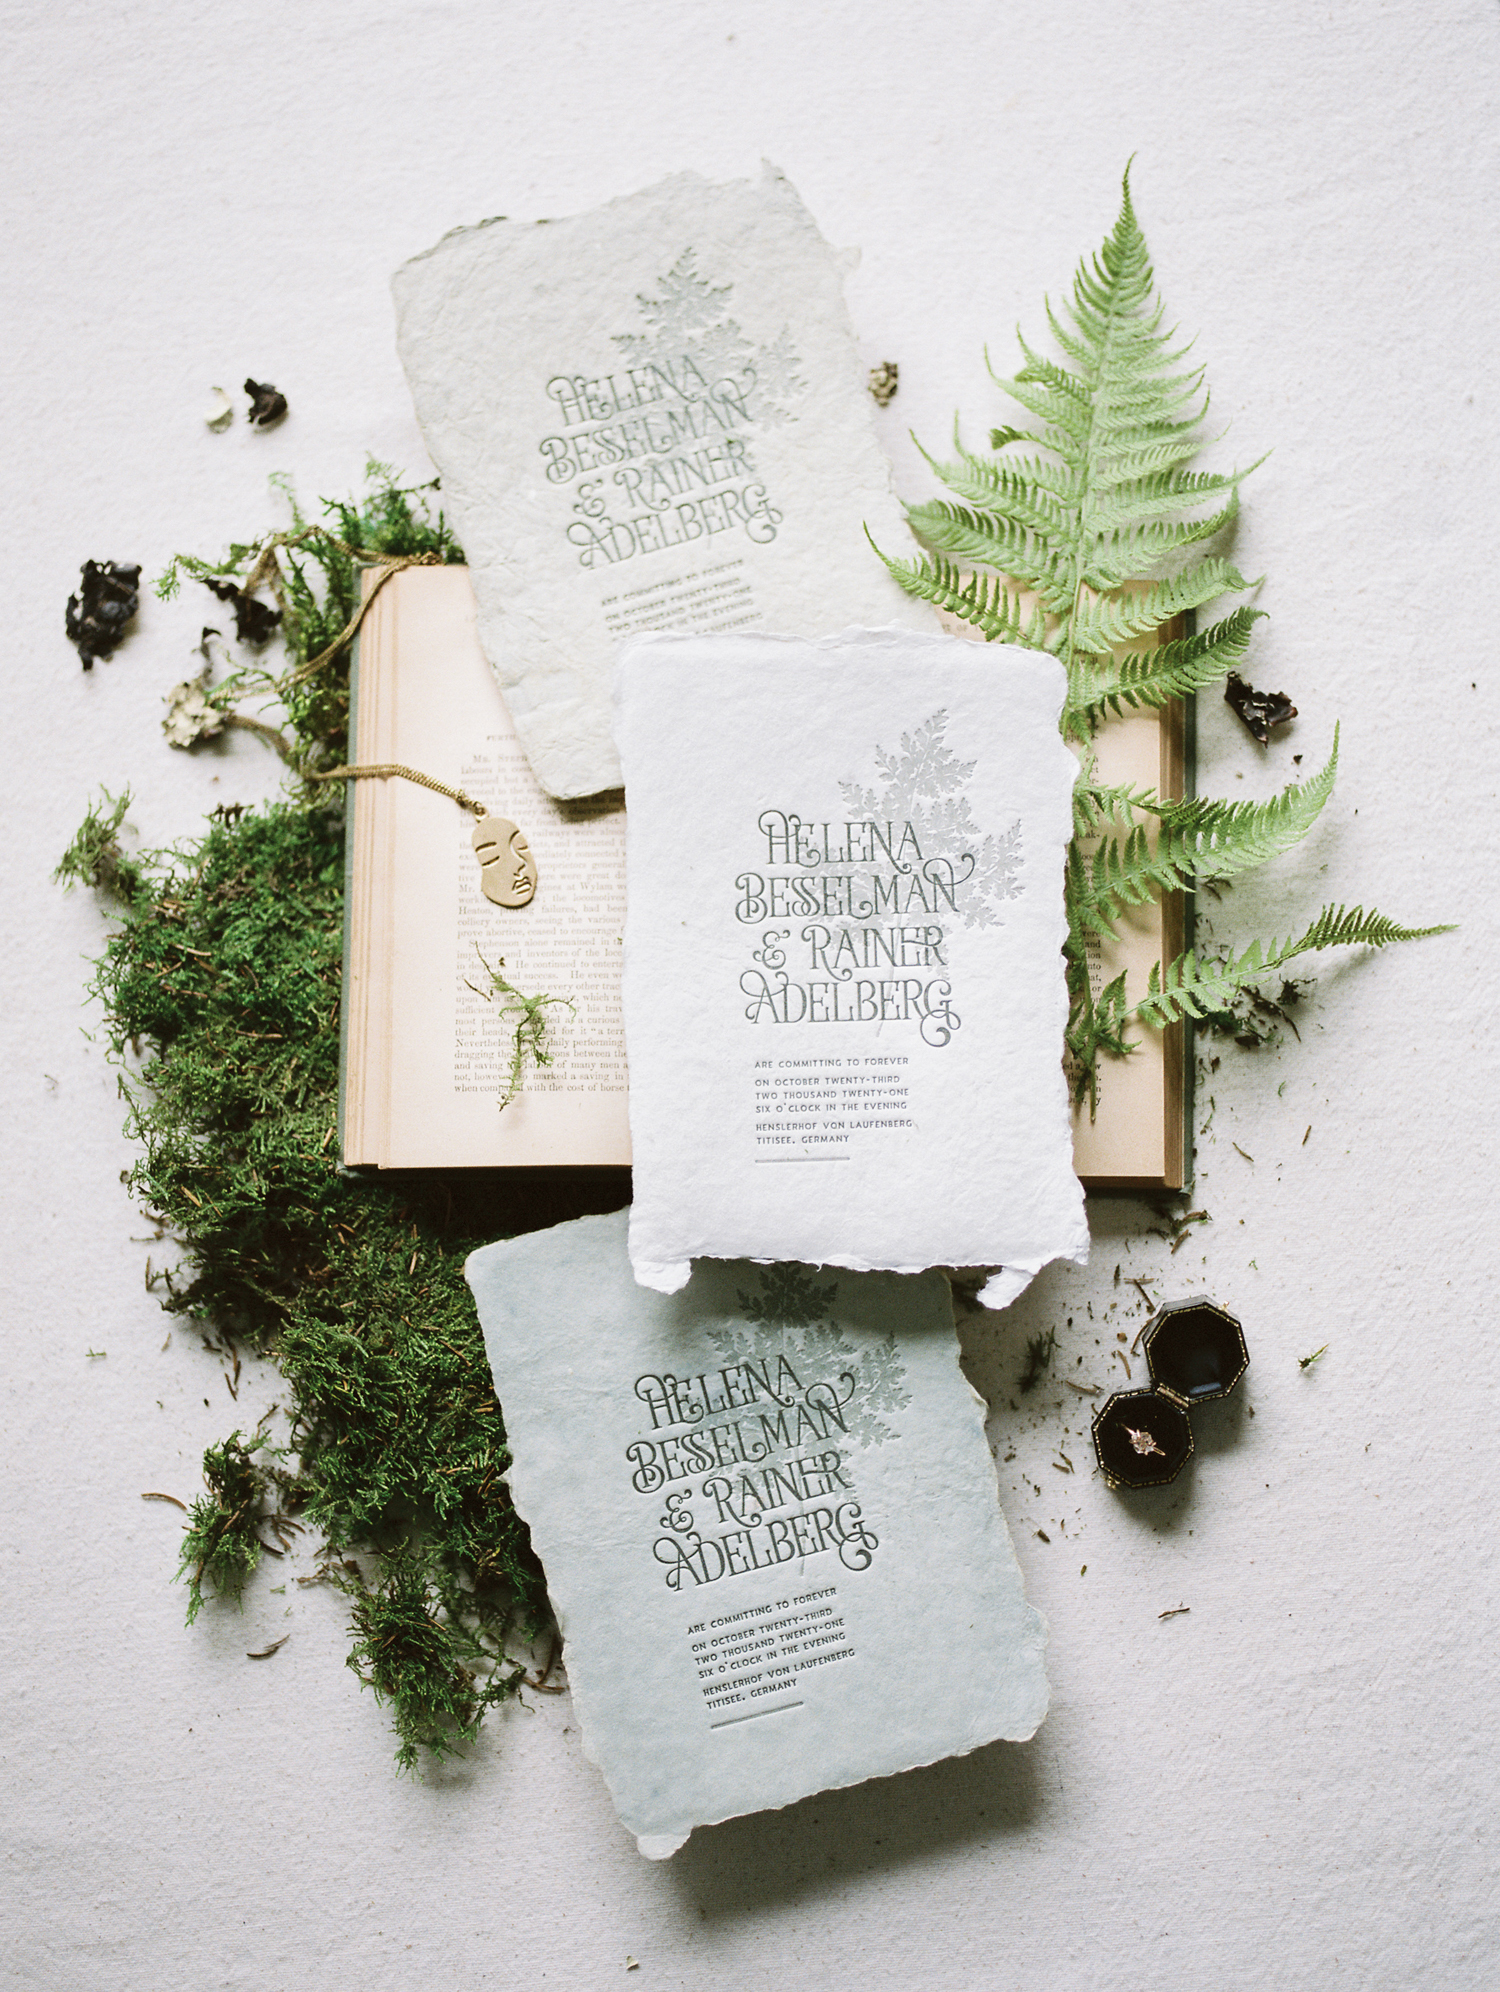 Woodland inspired custom wedding stationery on handmade paper is shown laying atop an antique book with moss and ferns in Detroit, Michigan